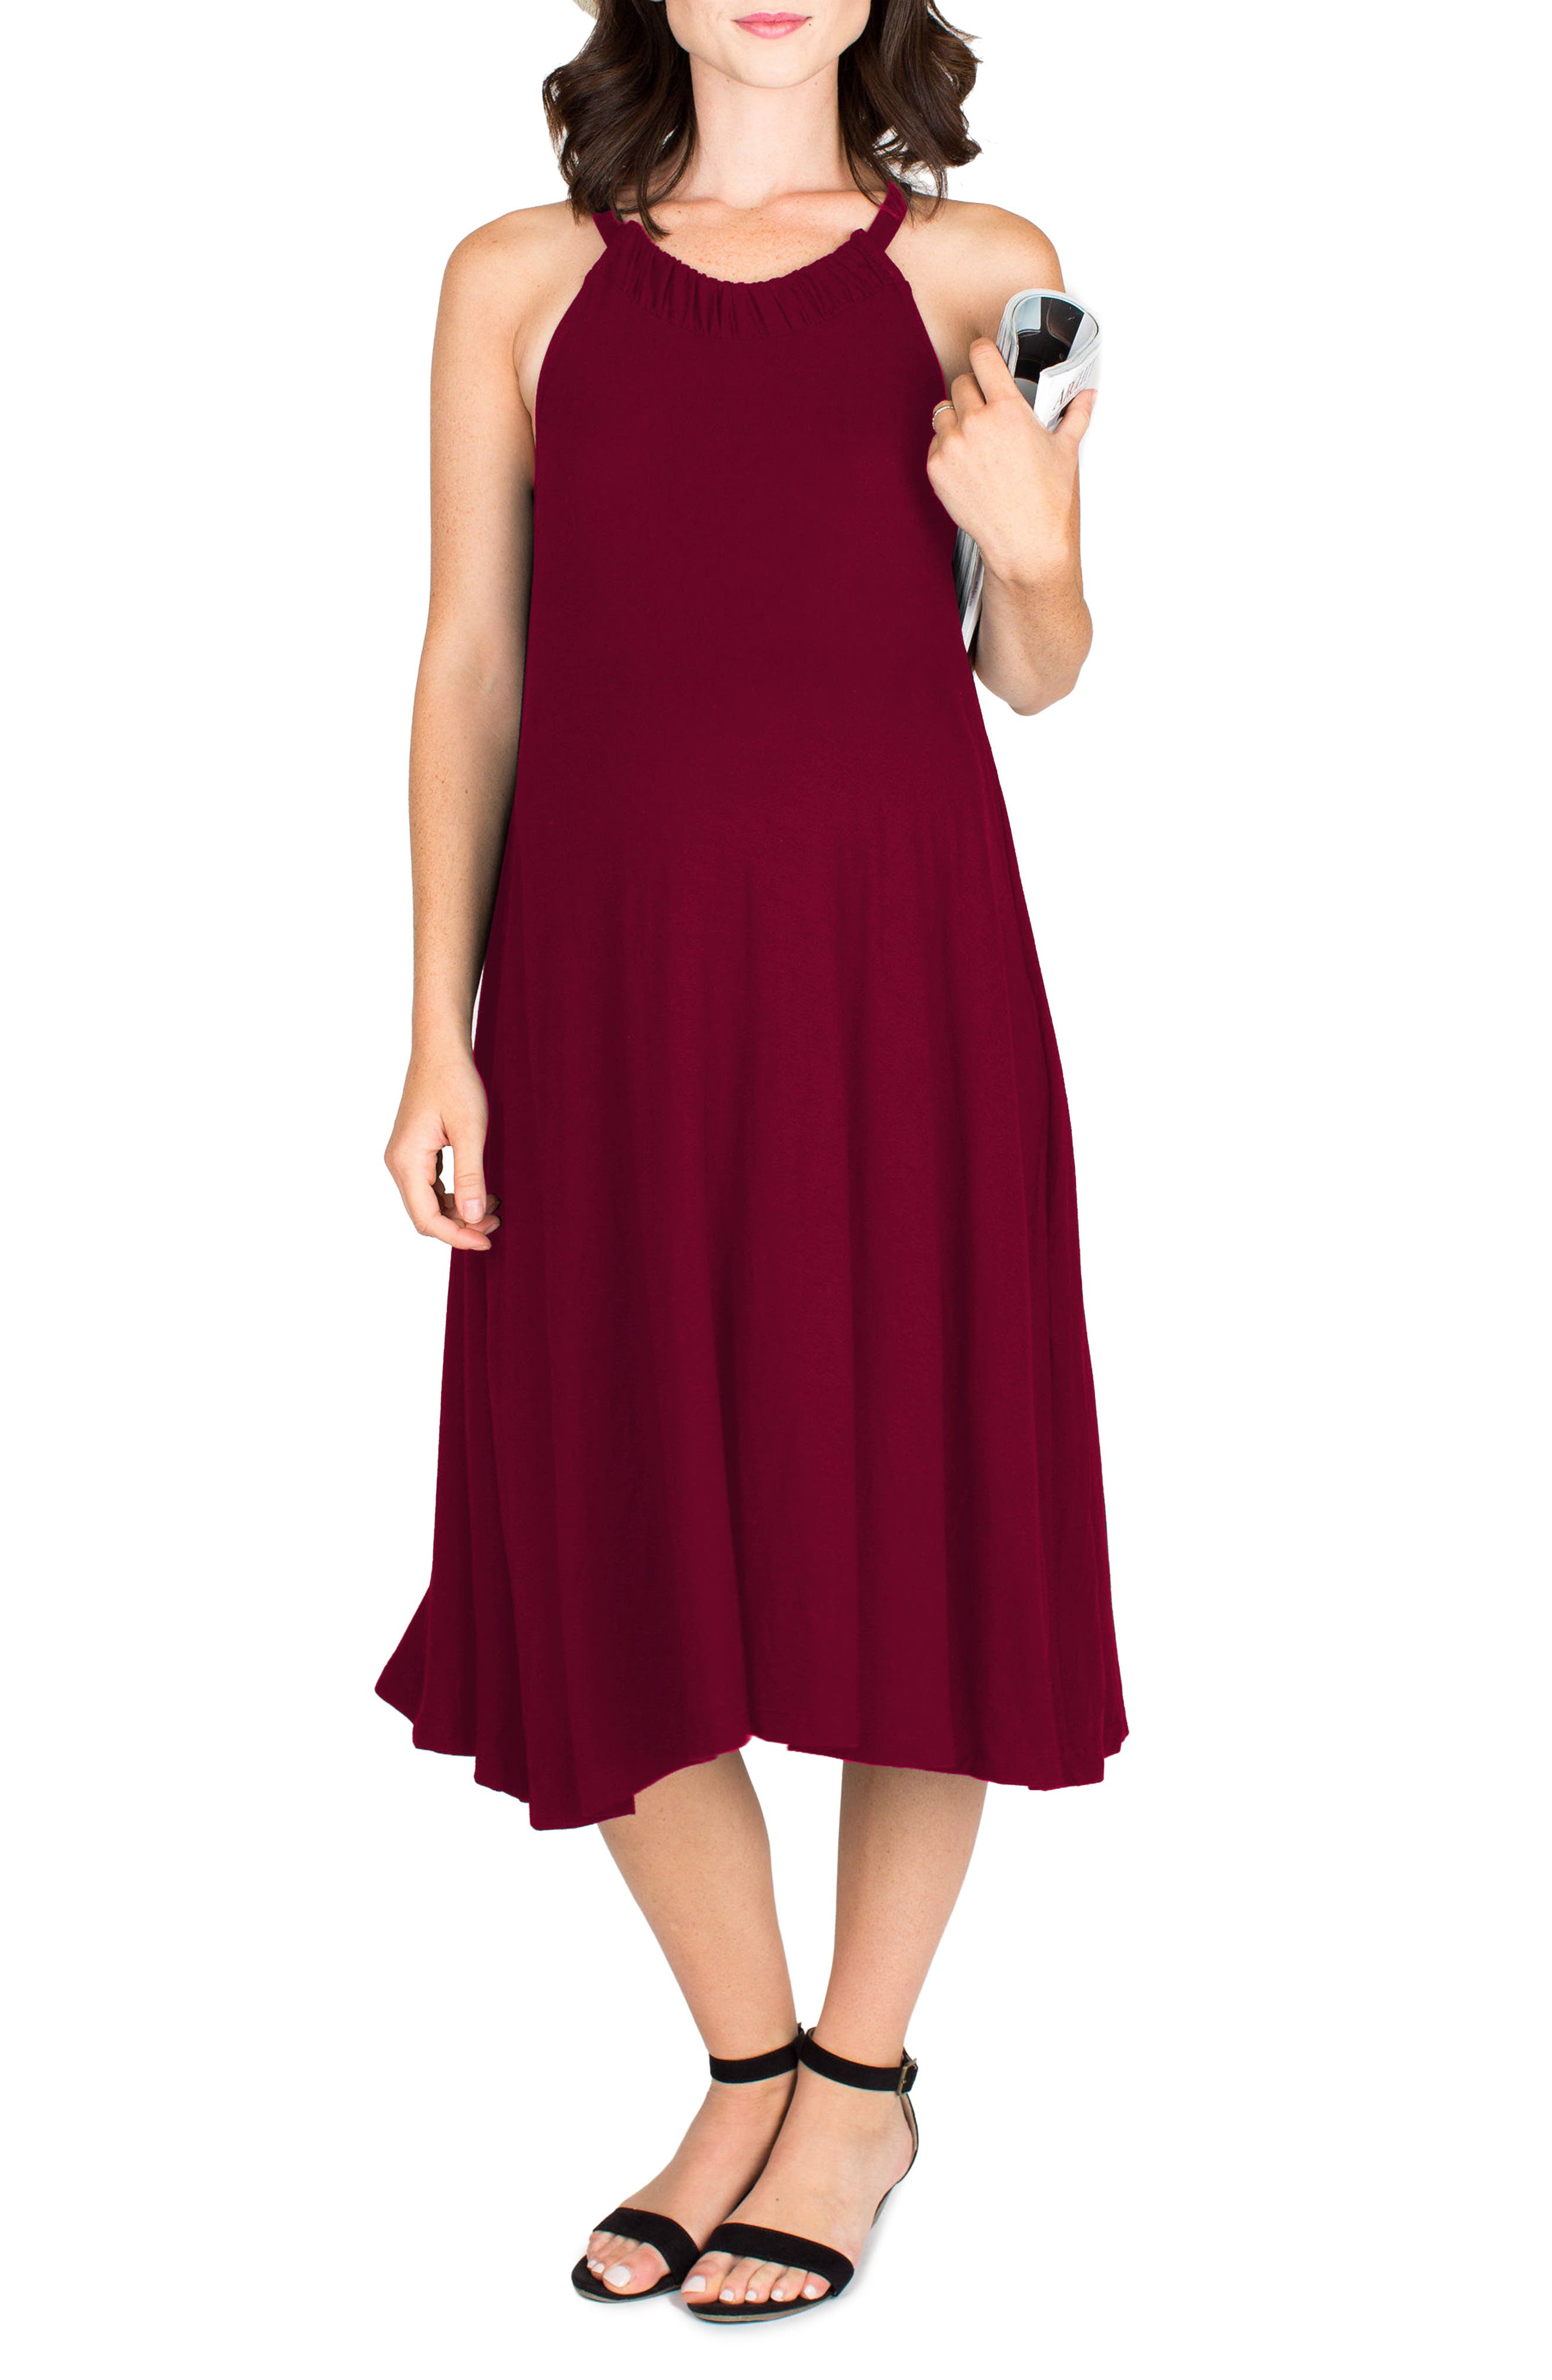 Nom Maternity Andrea Maternity Midi Dress